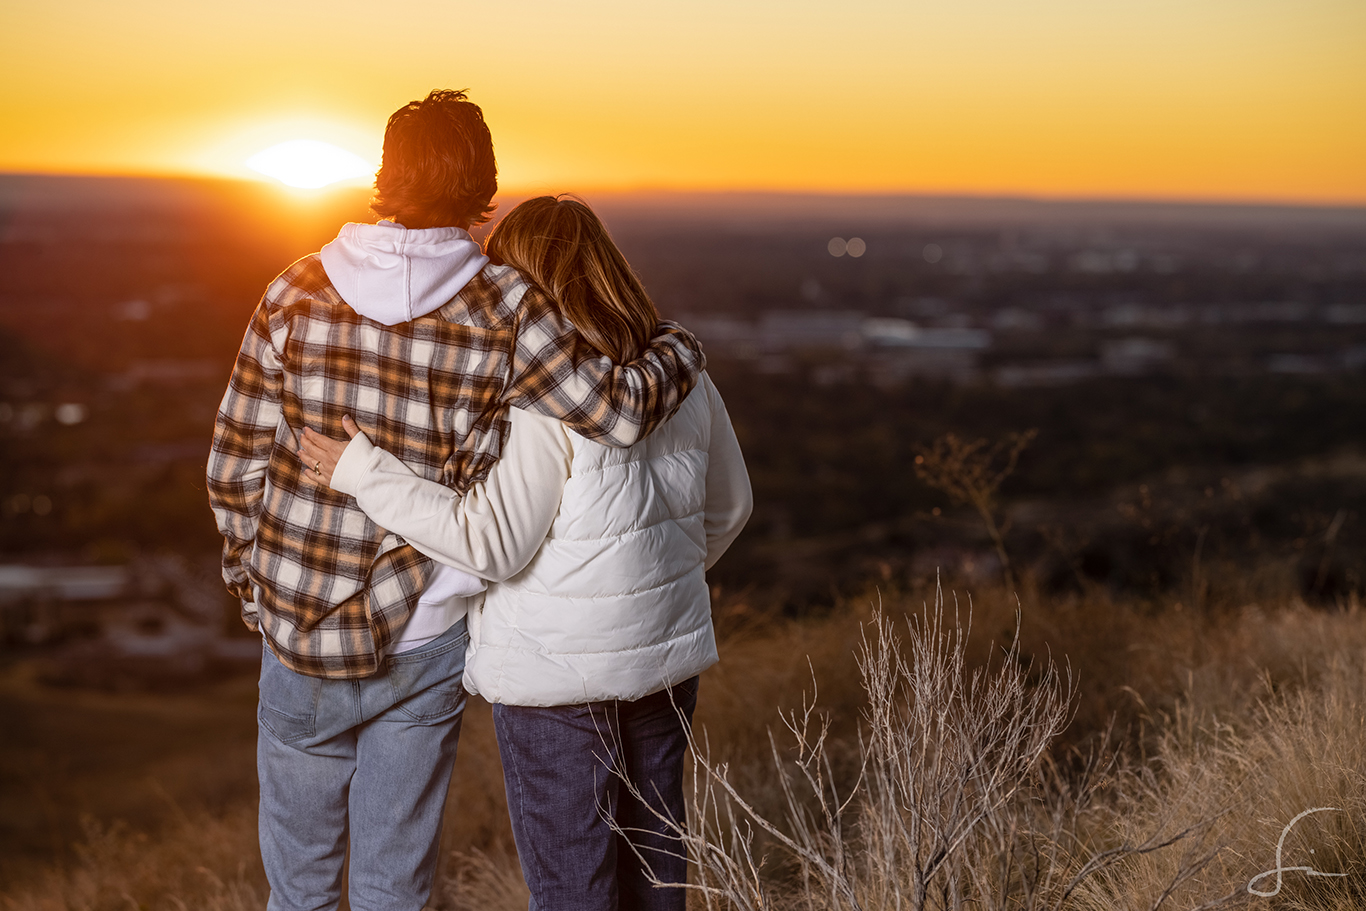 A son holding his mother at sunset in the hills of Boise.